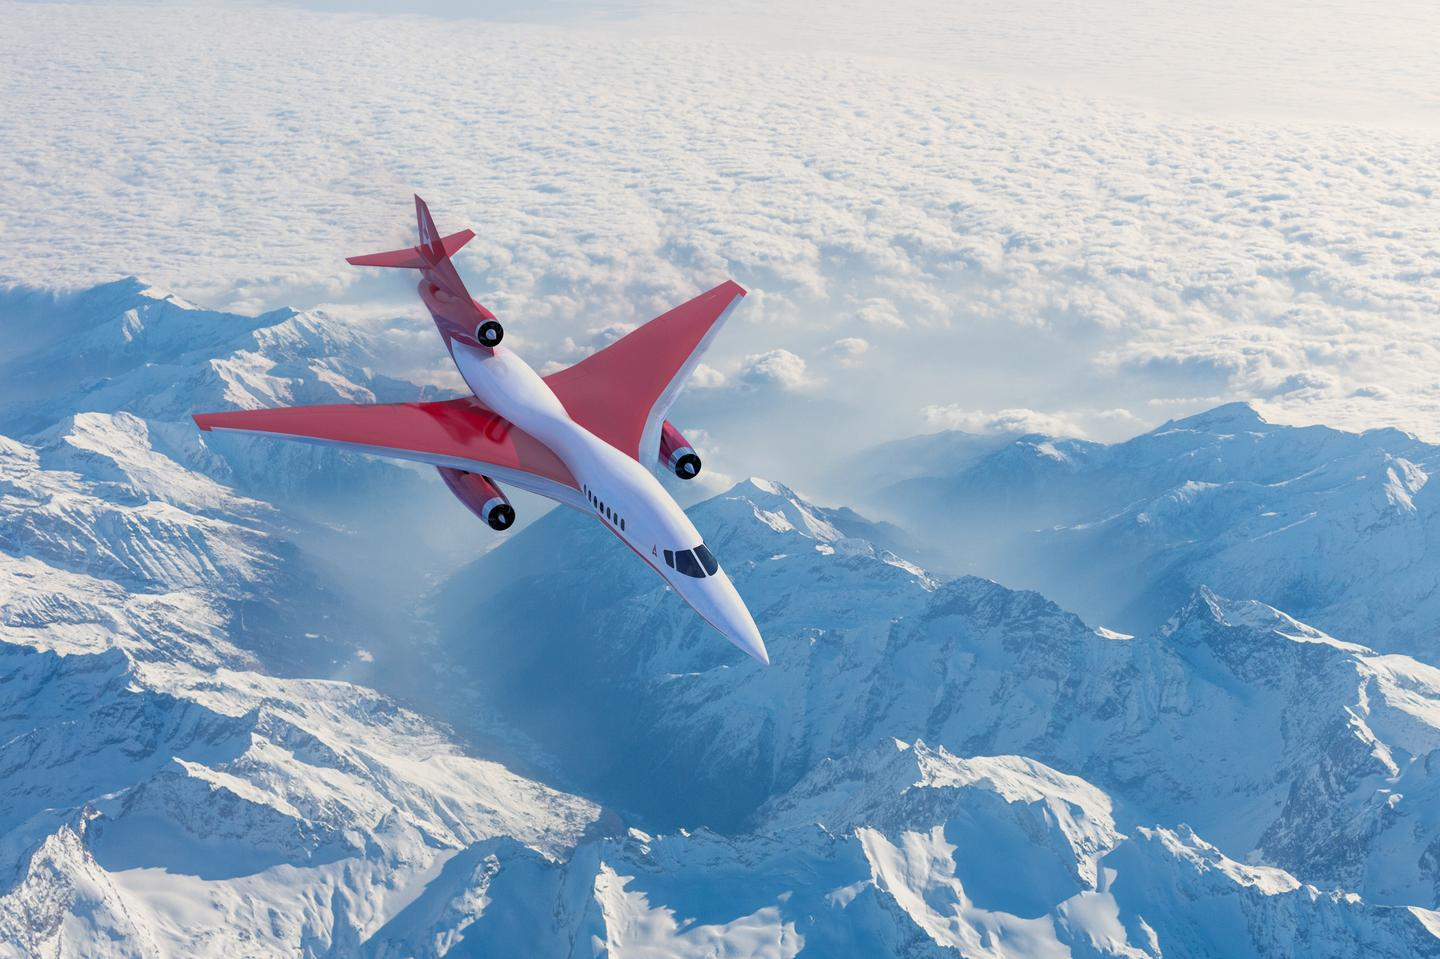 At around US$120 million a pop, and seating 11-12 passengers, the AS2 is a next-level business jet for the ultra-wealthy